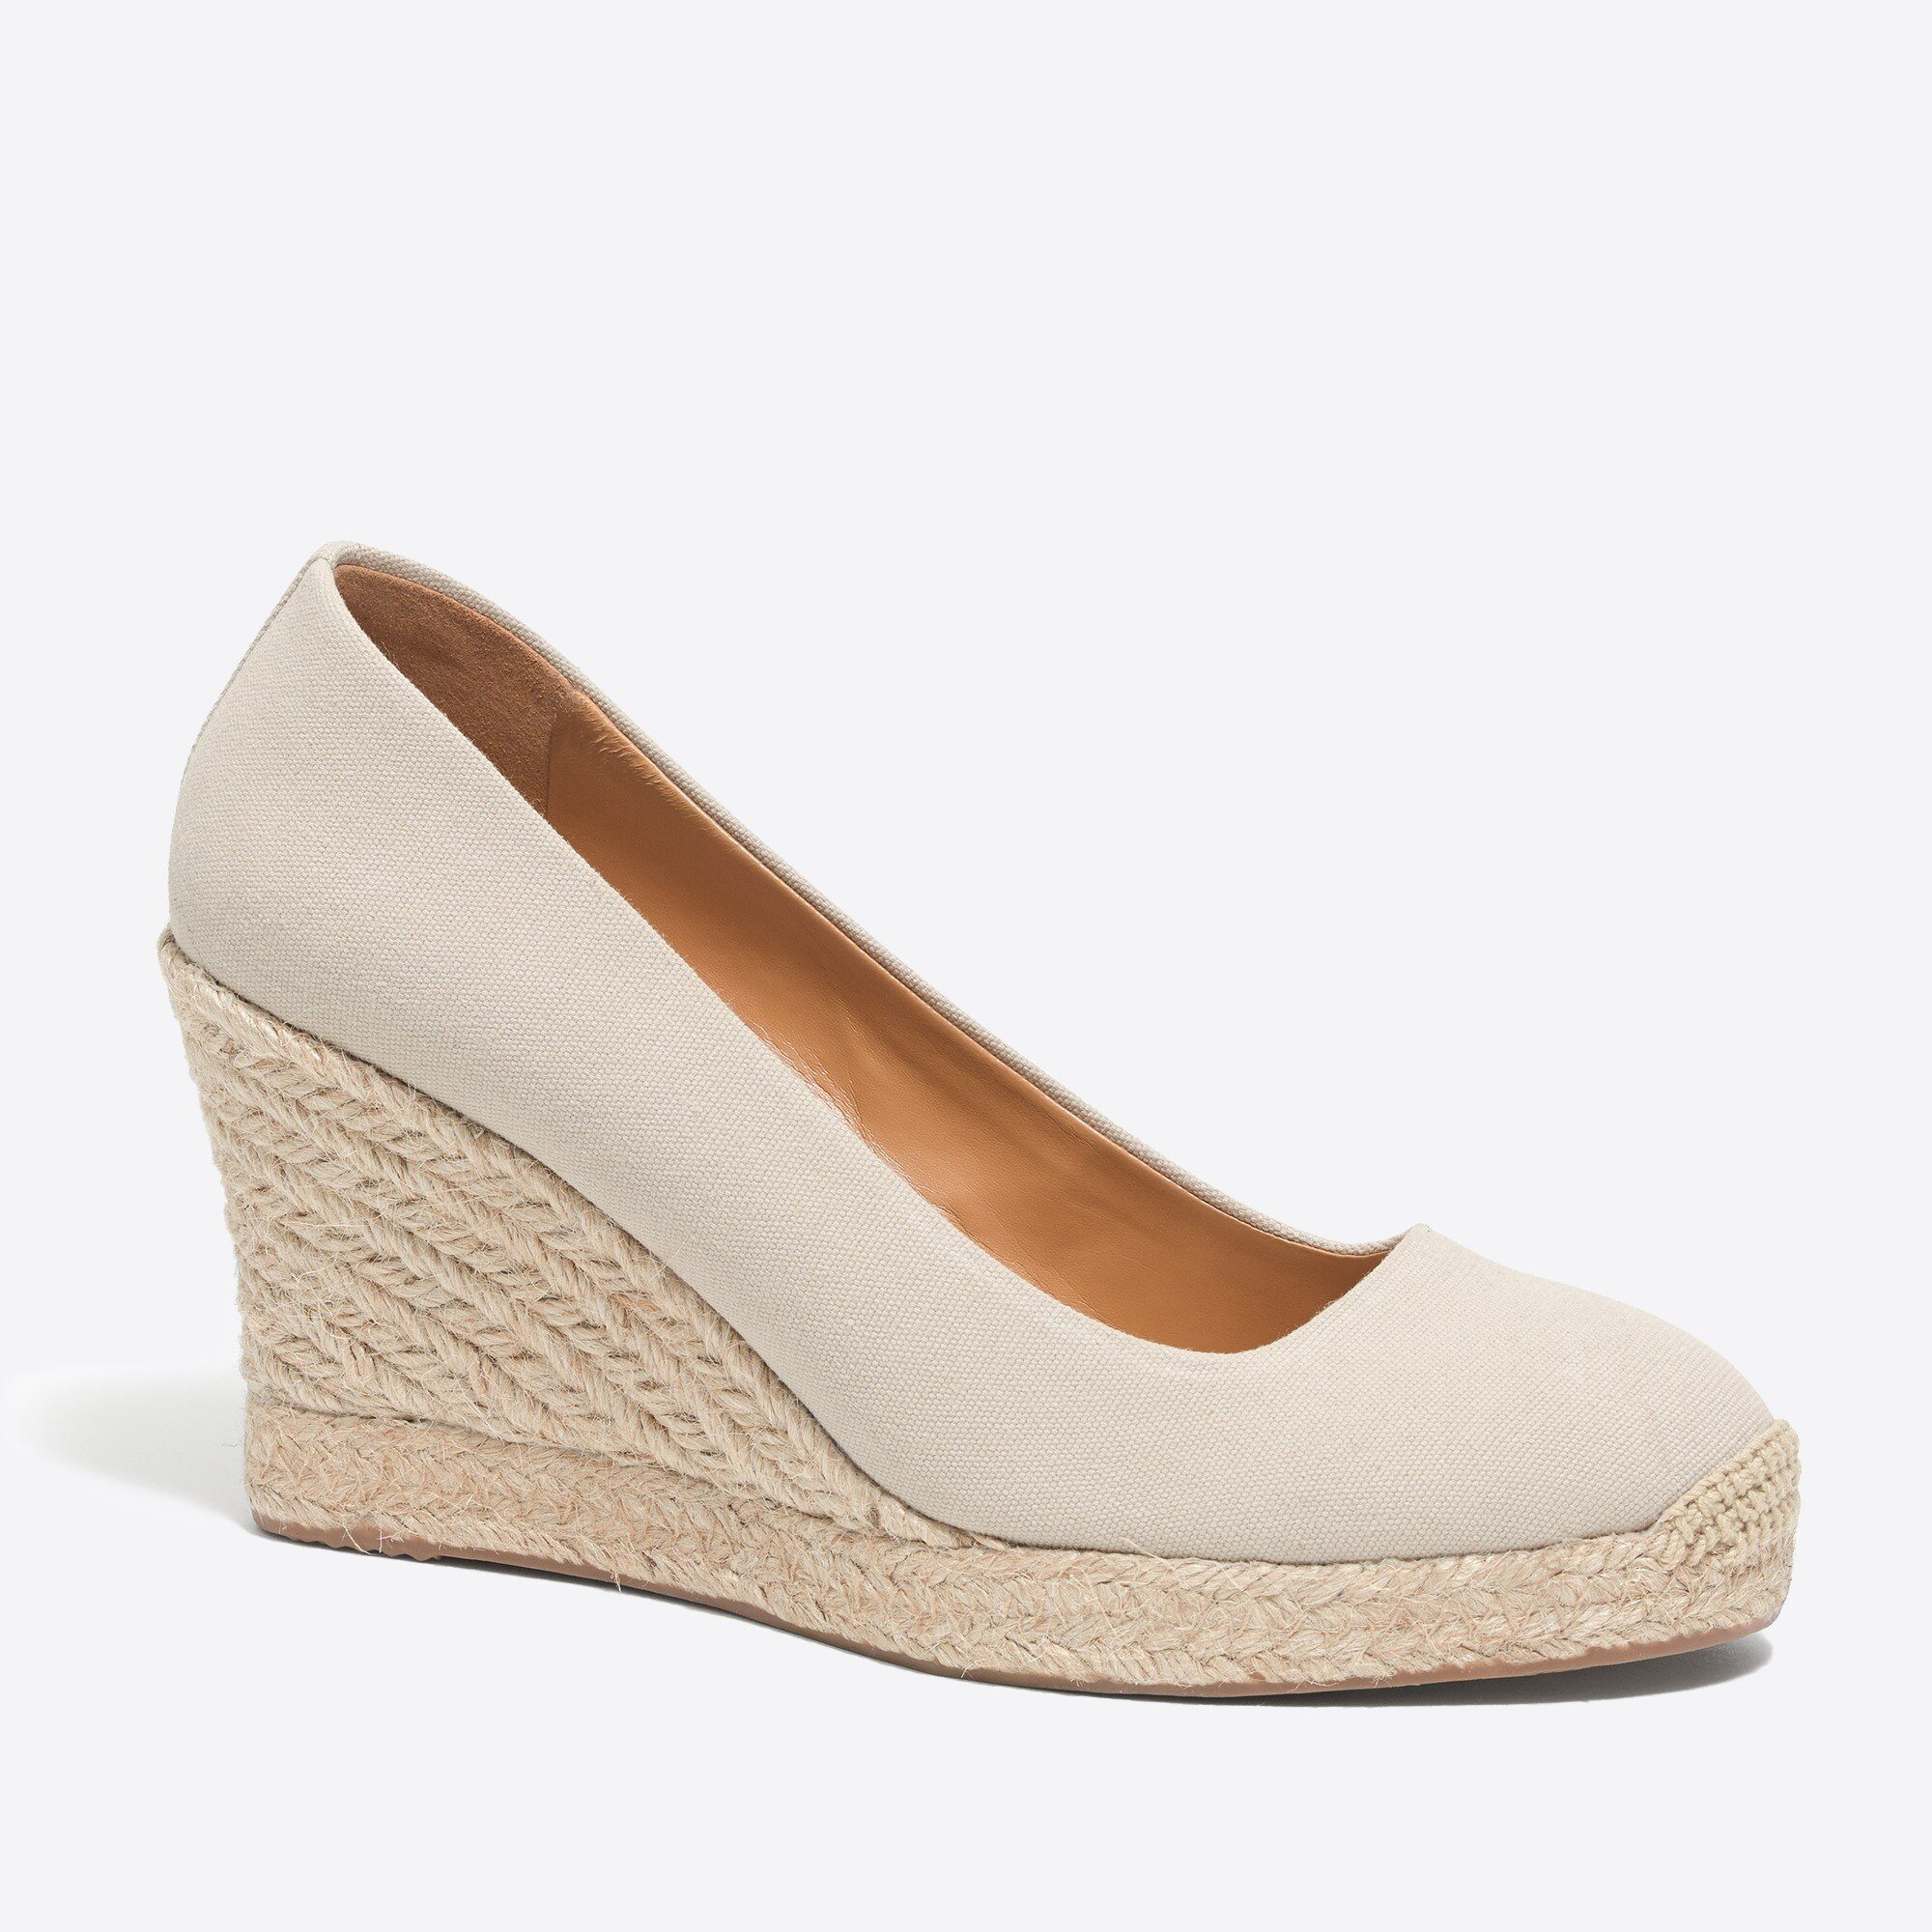 8a8fe607526 Your items qualify for an extra 15% - J.Crew FACTORY Email Archive